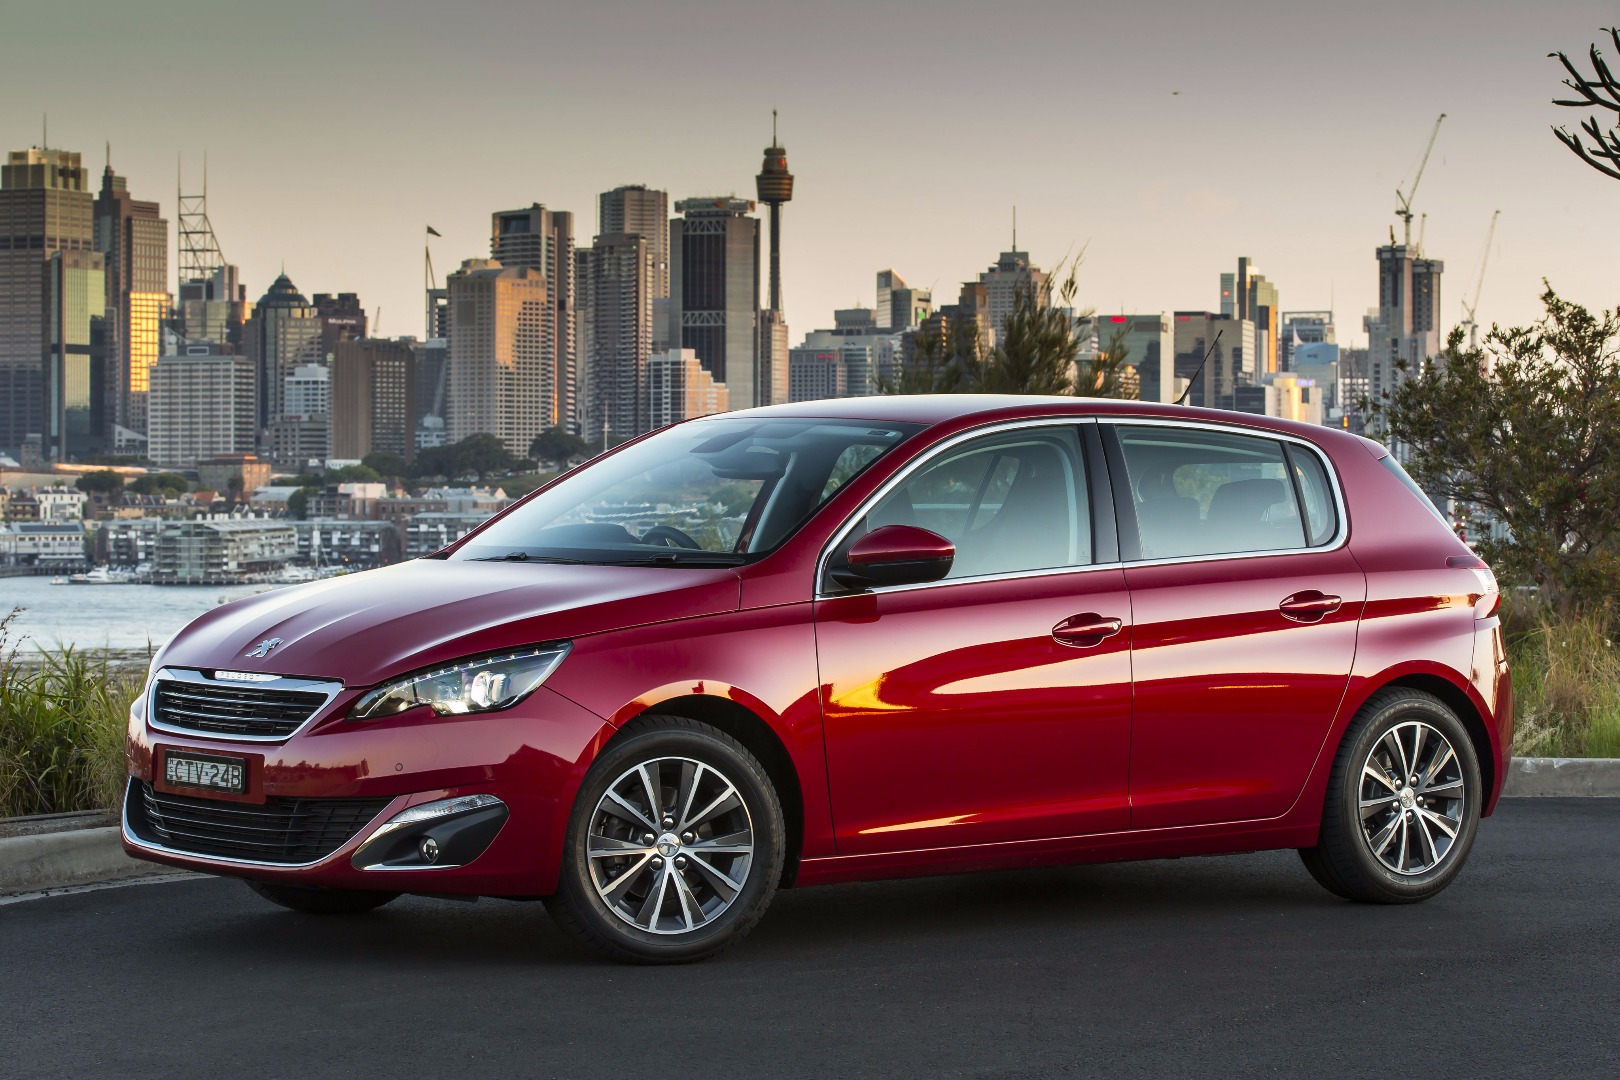 Price Of Mazda 5 >> Review - 2017 Peugeot 308 - Review